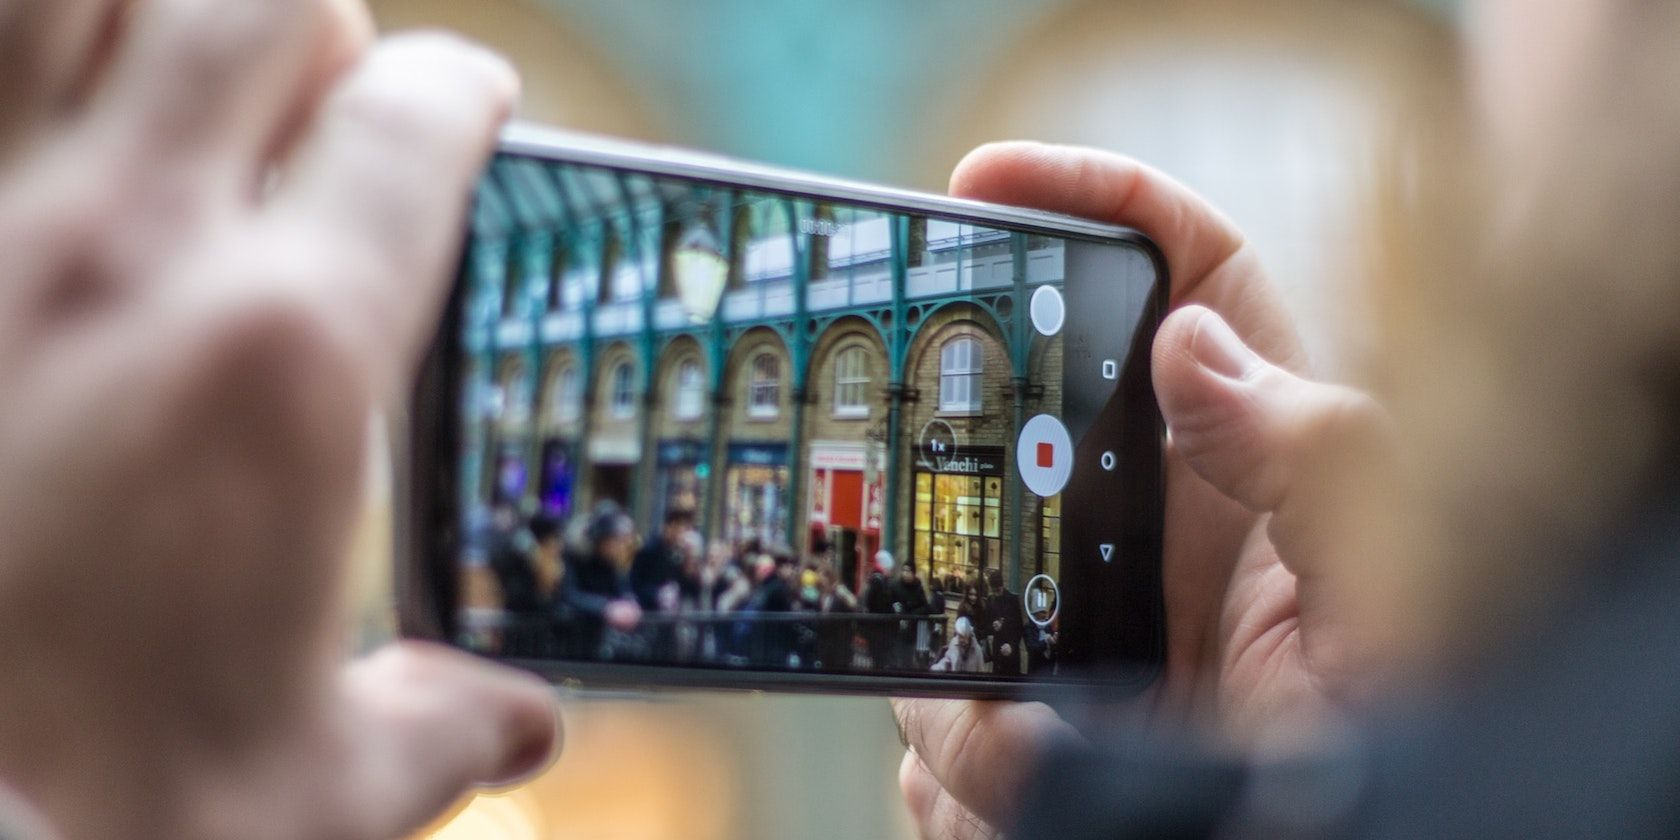 How to Get the Google Camera App on Any Android Phone